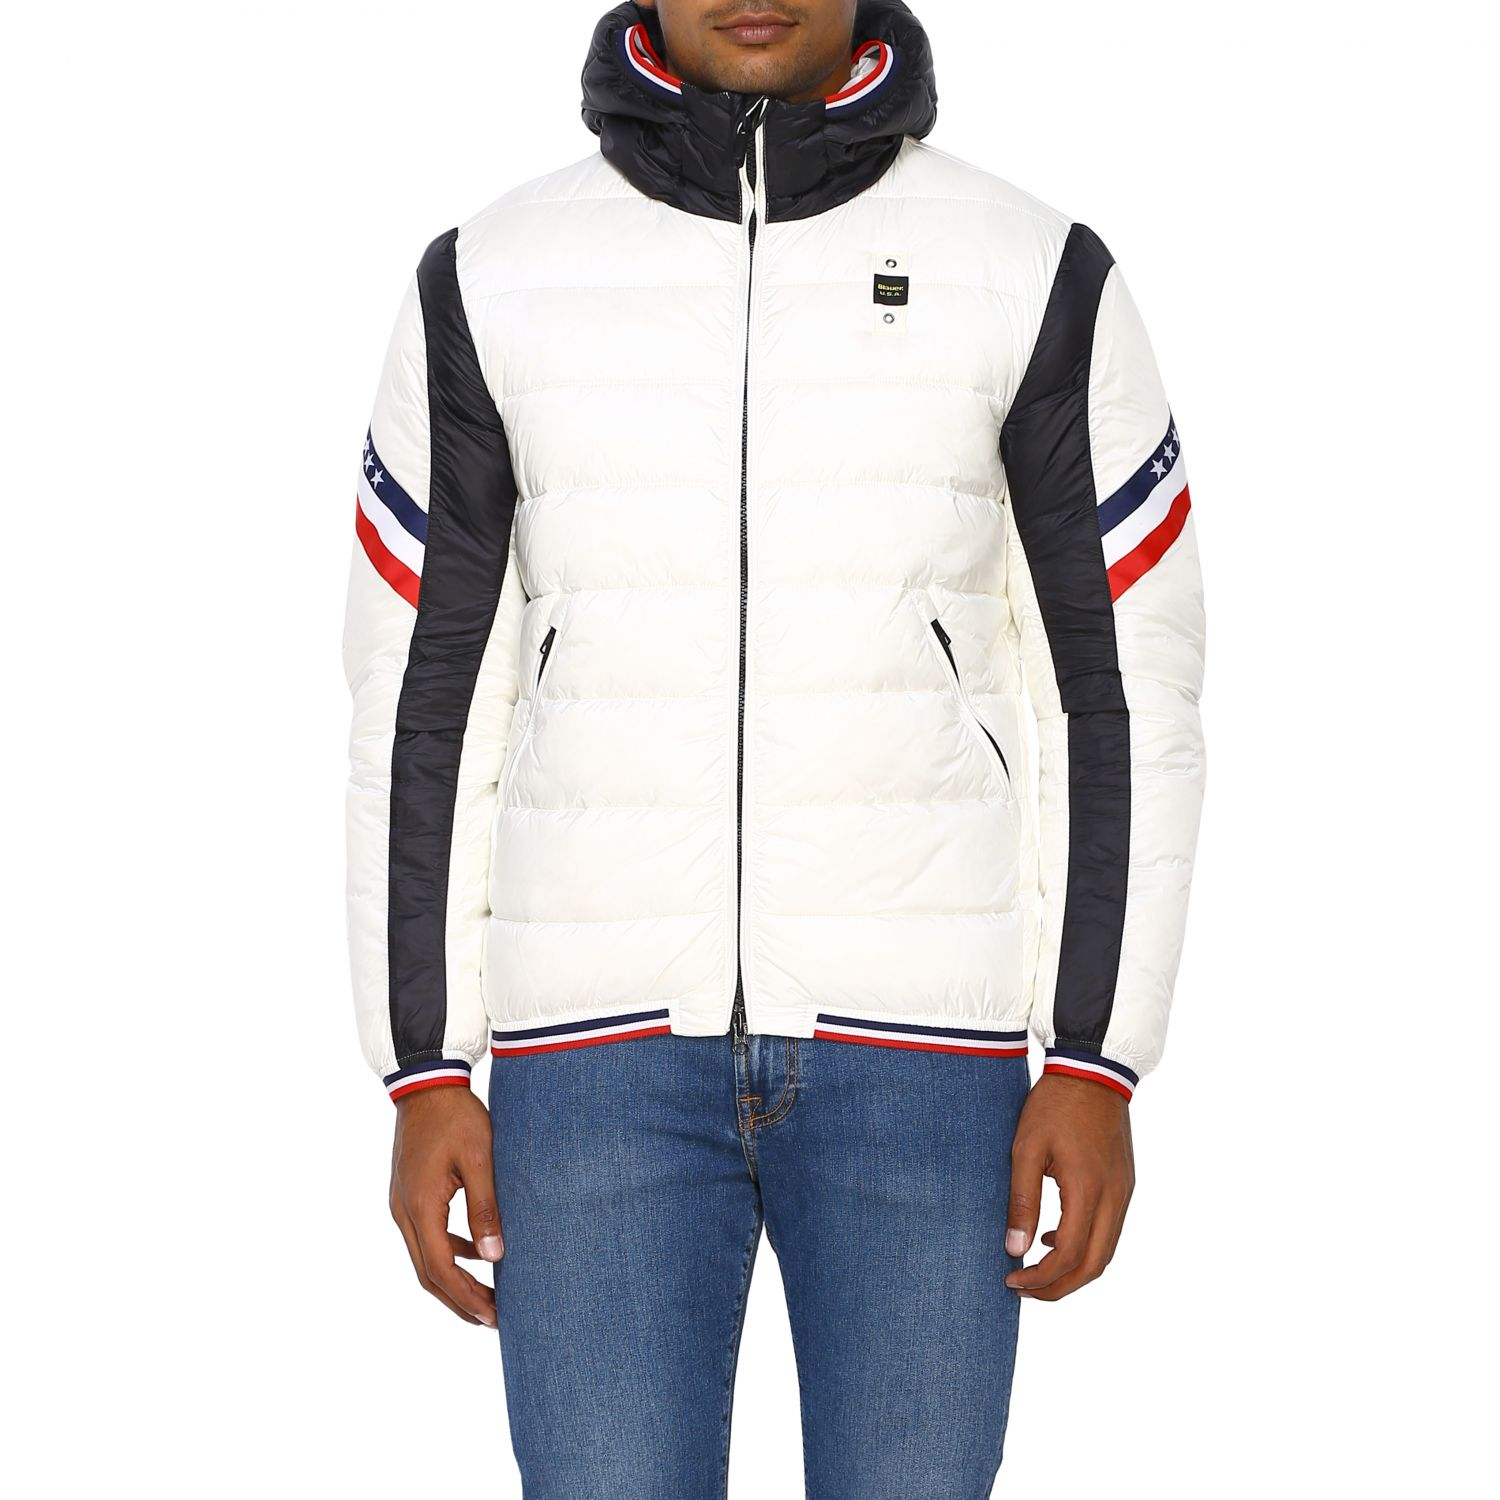 Jacket men Blauer white 1